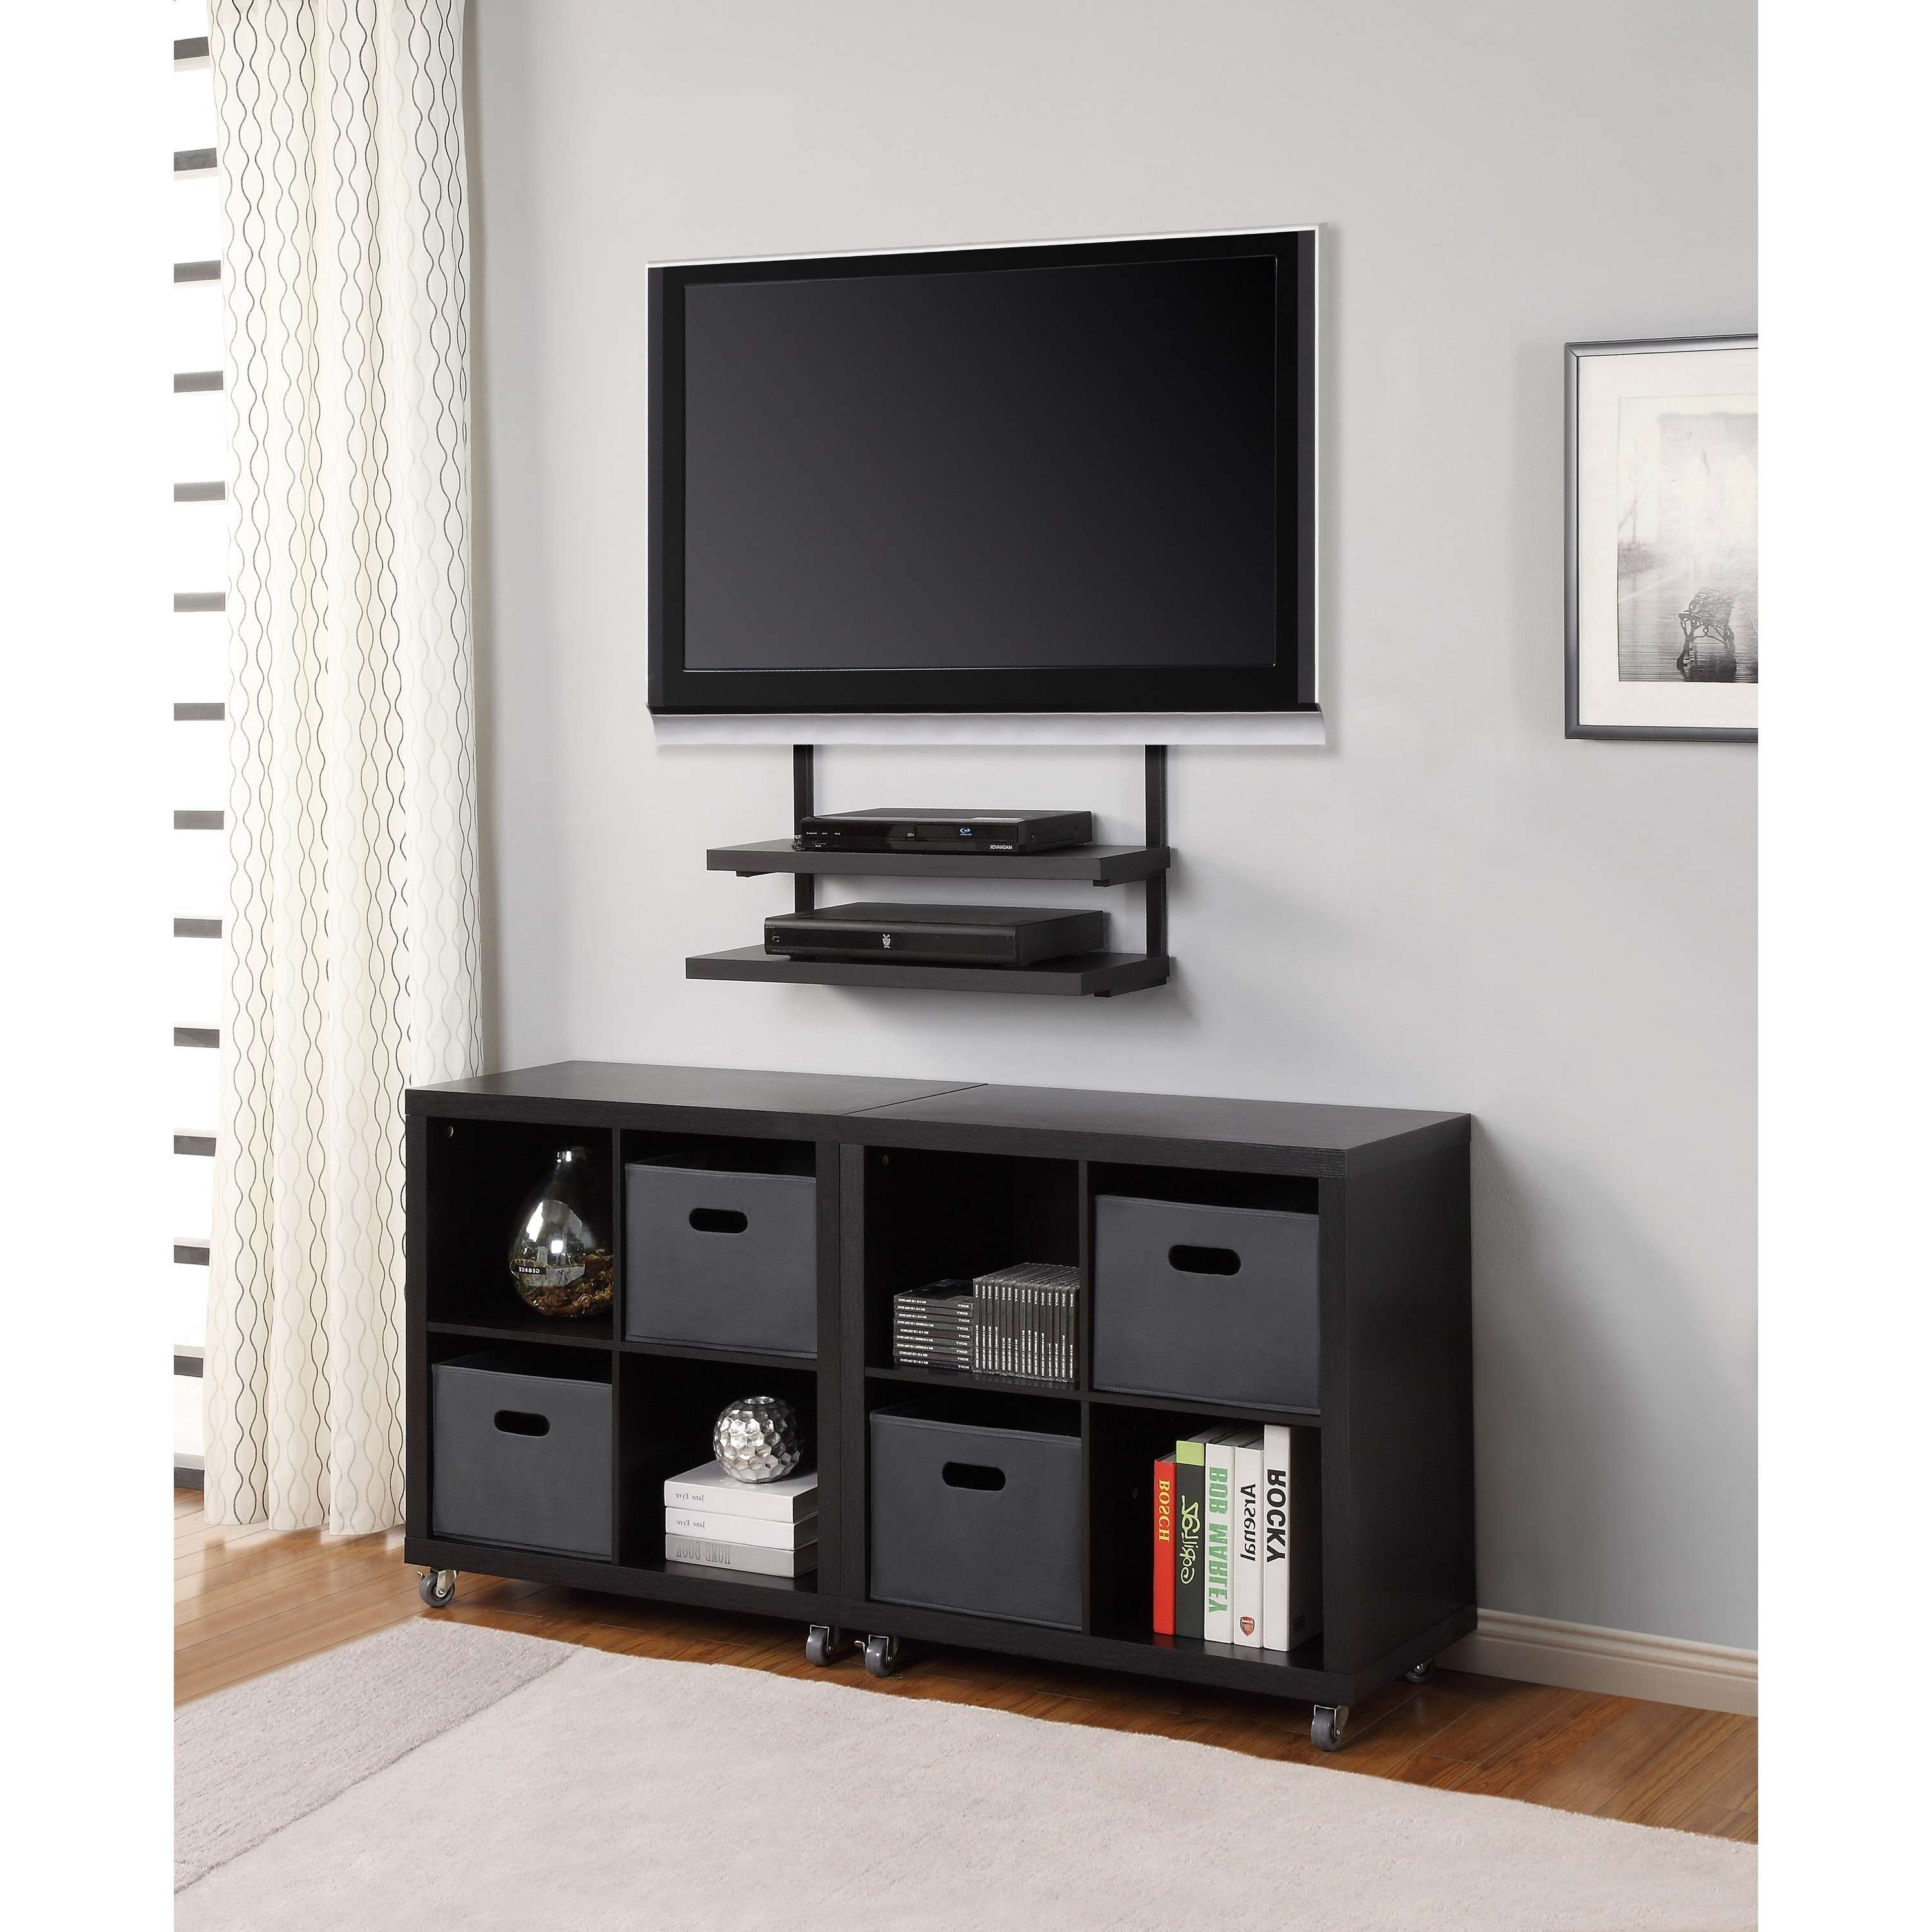 Tv Stands For Bedroom Dressers Ideas With Small Apartment Picture With Tv Stands With Baskets (View 14 of 15)